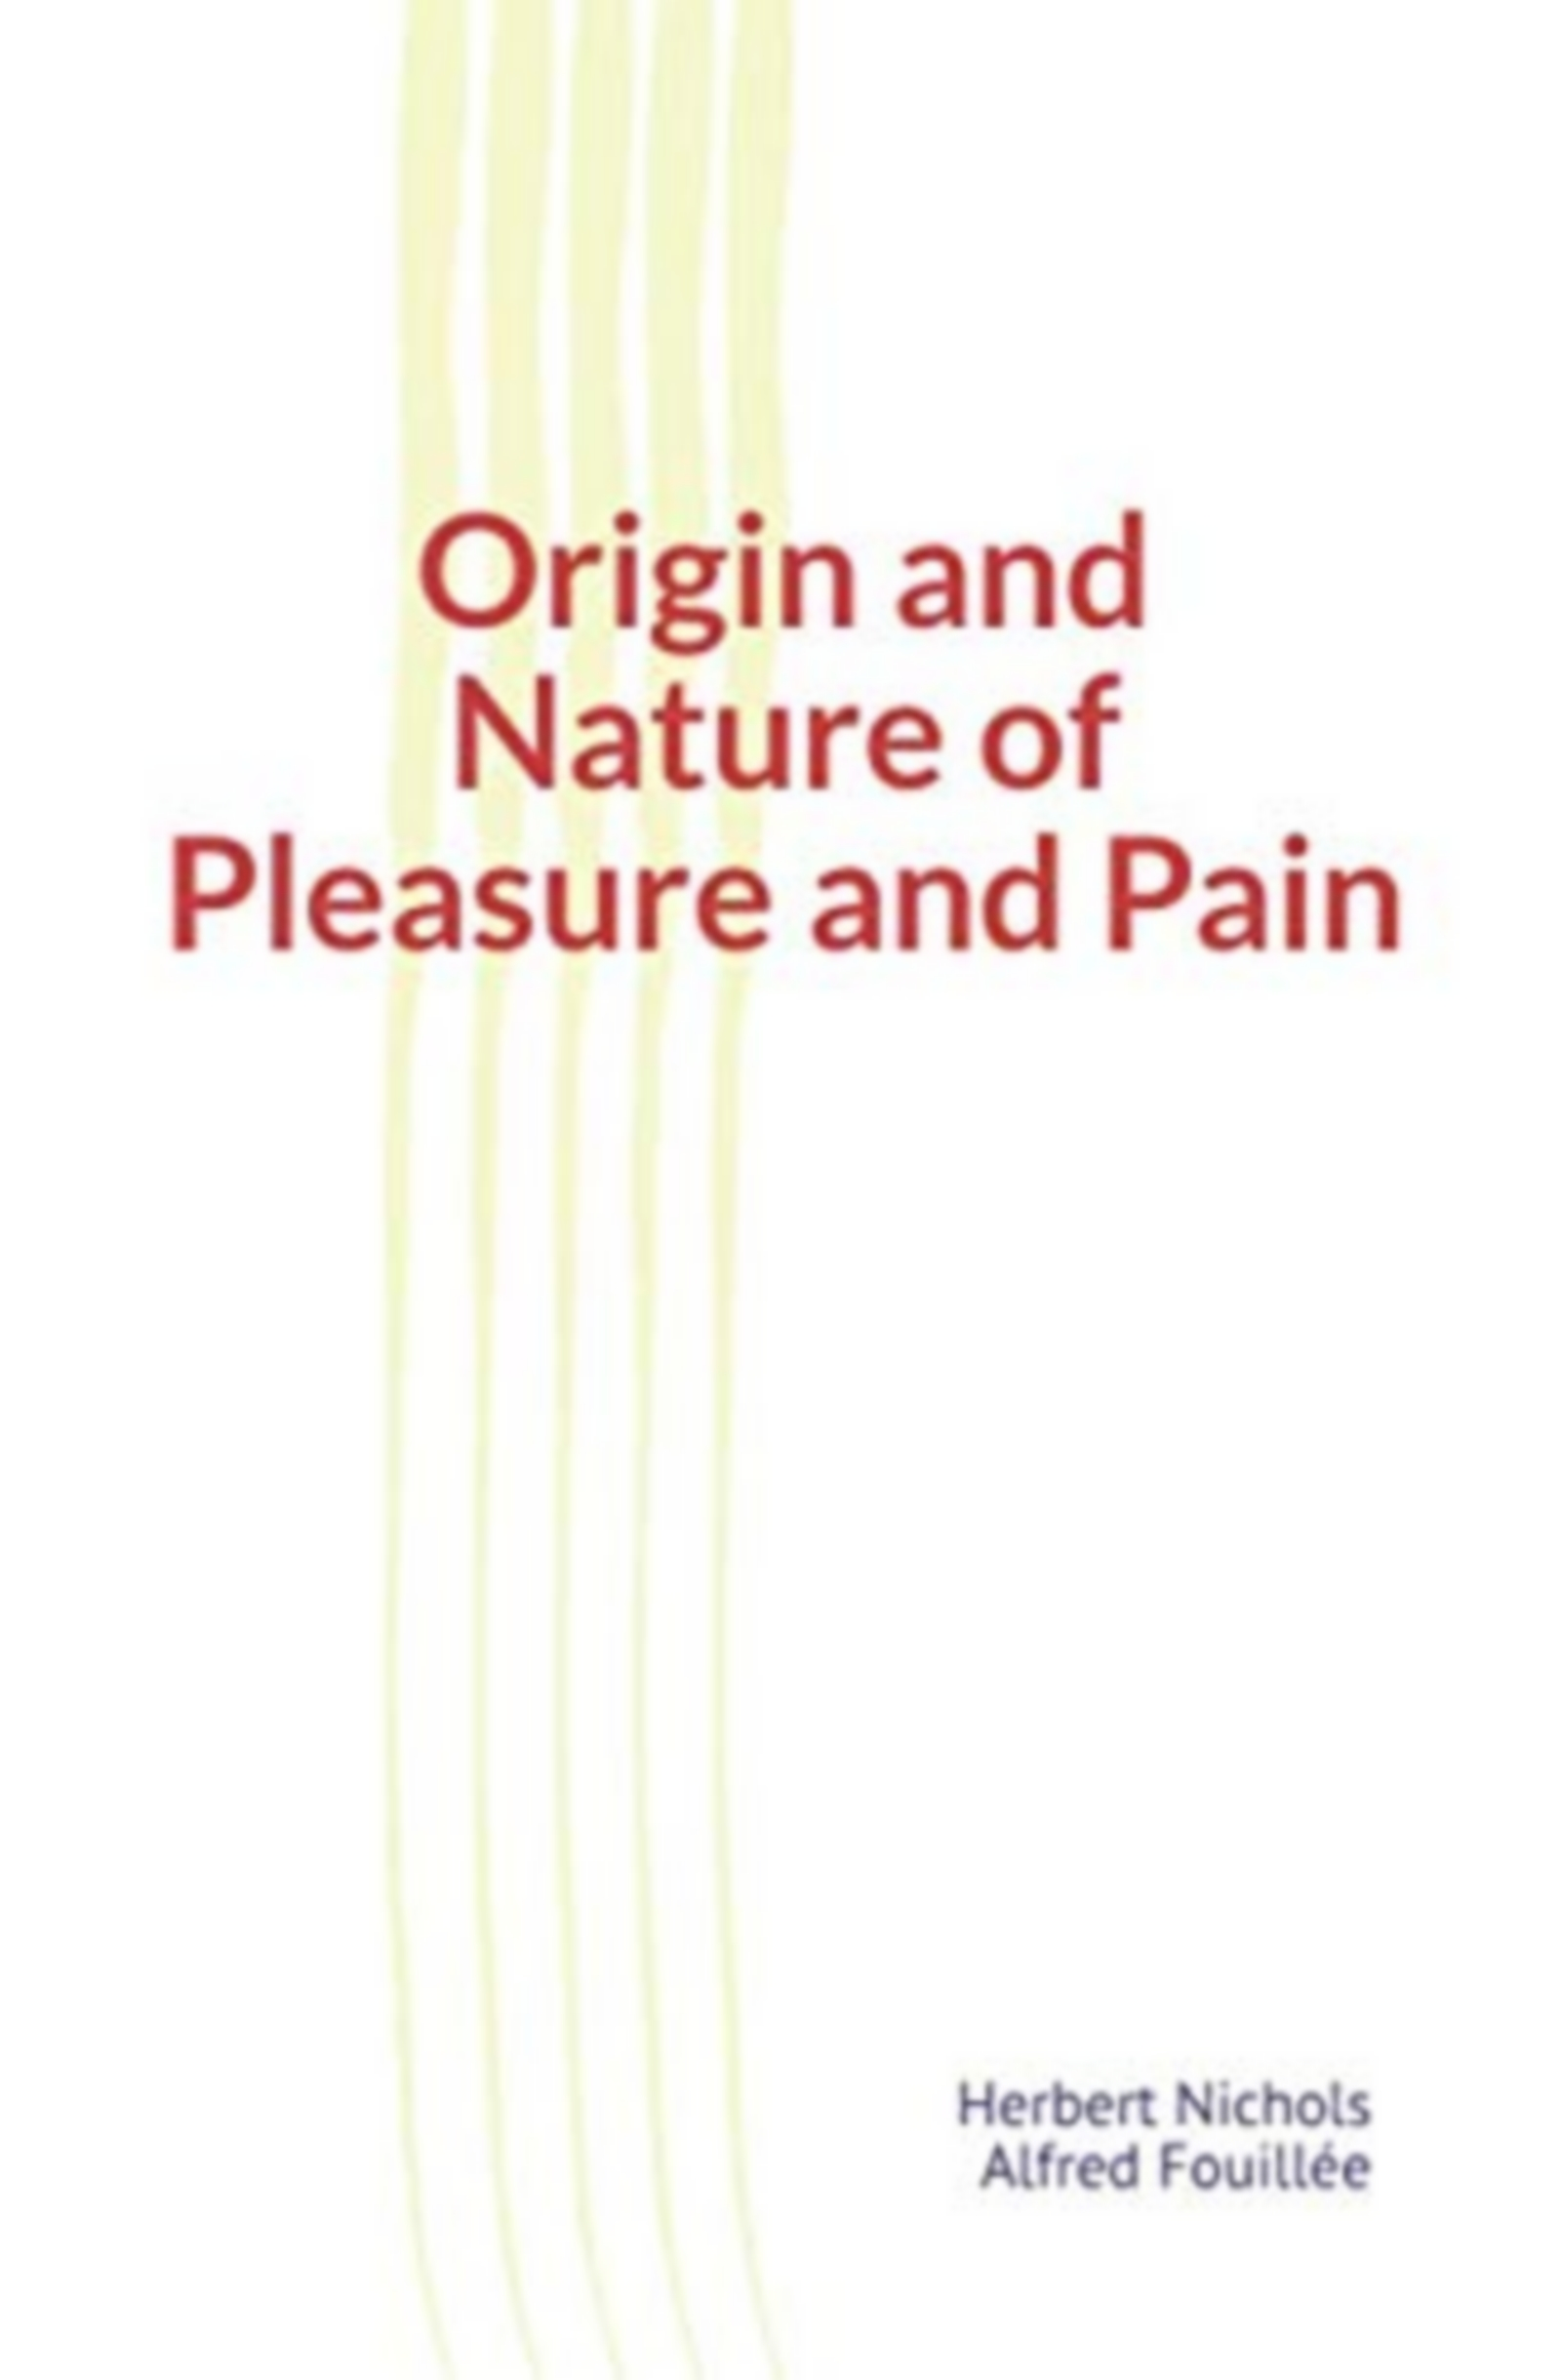 Origin and Nature of Pleasure and Pain